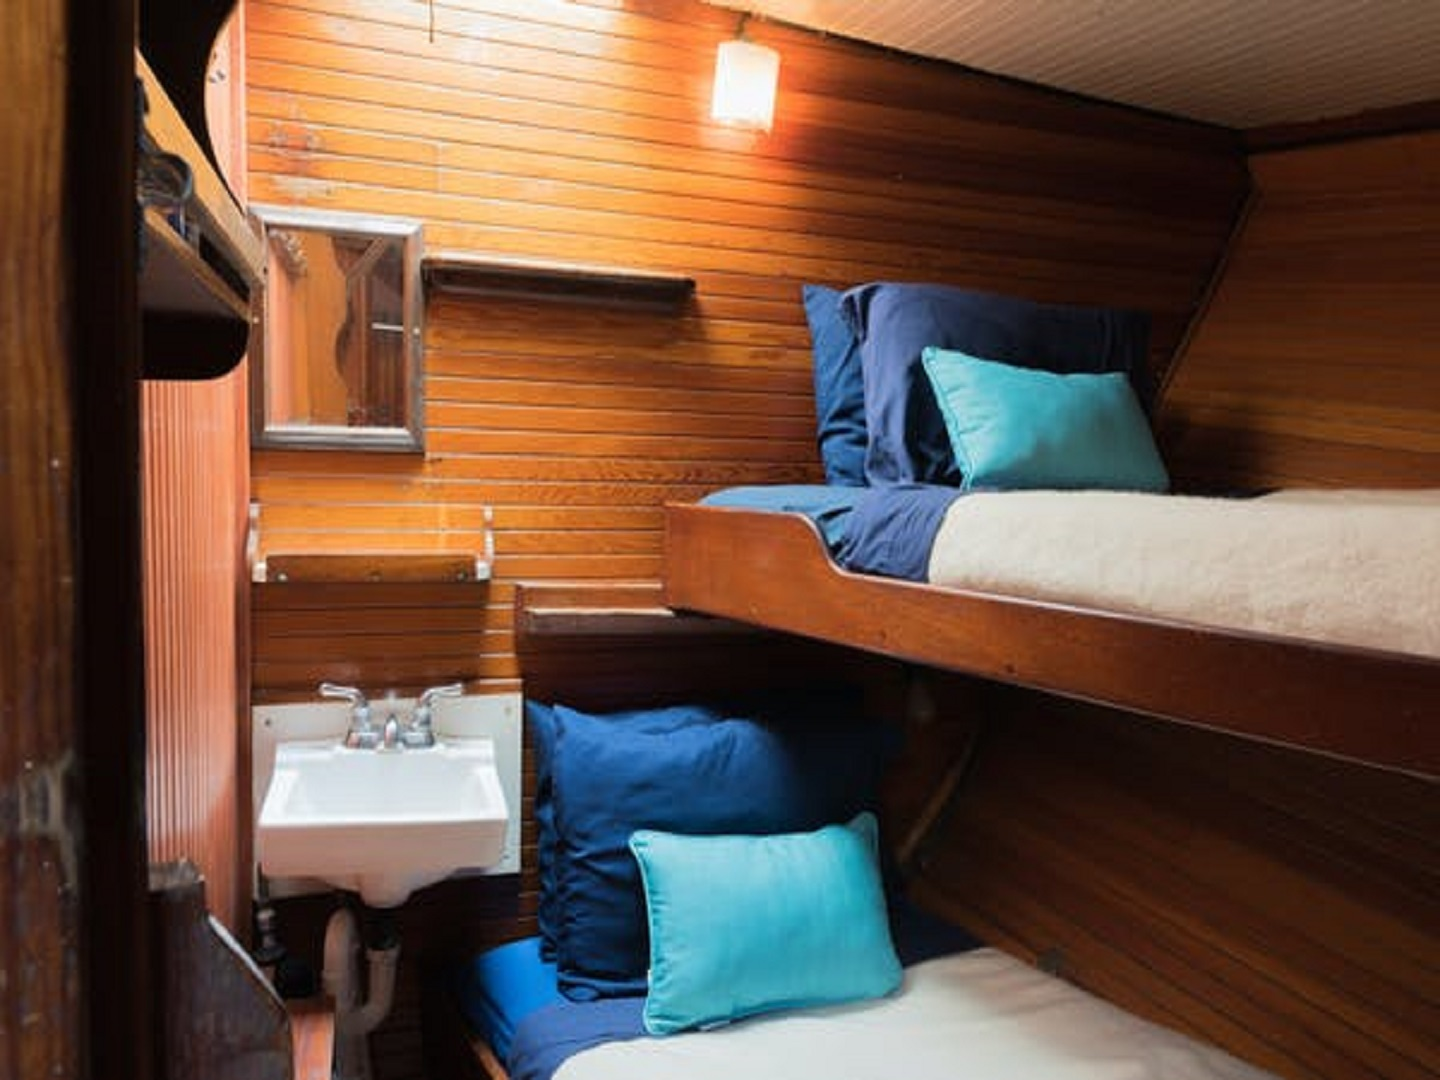 A bedroom with a bed and desk in a room at Liberty Fleet Tall Ship Overnights.